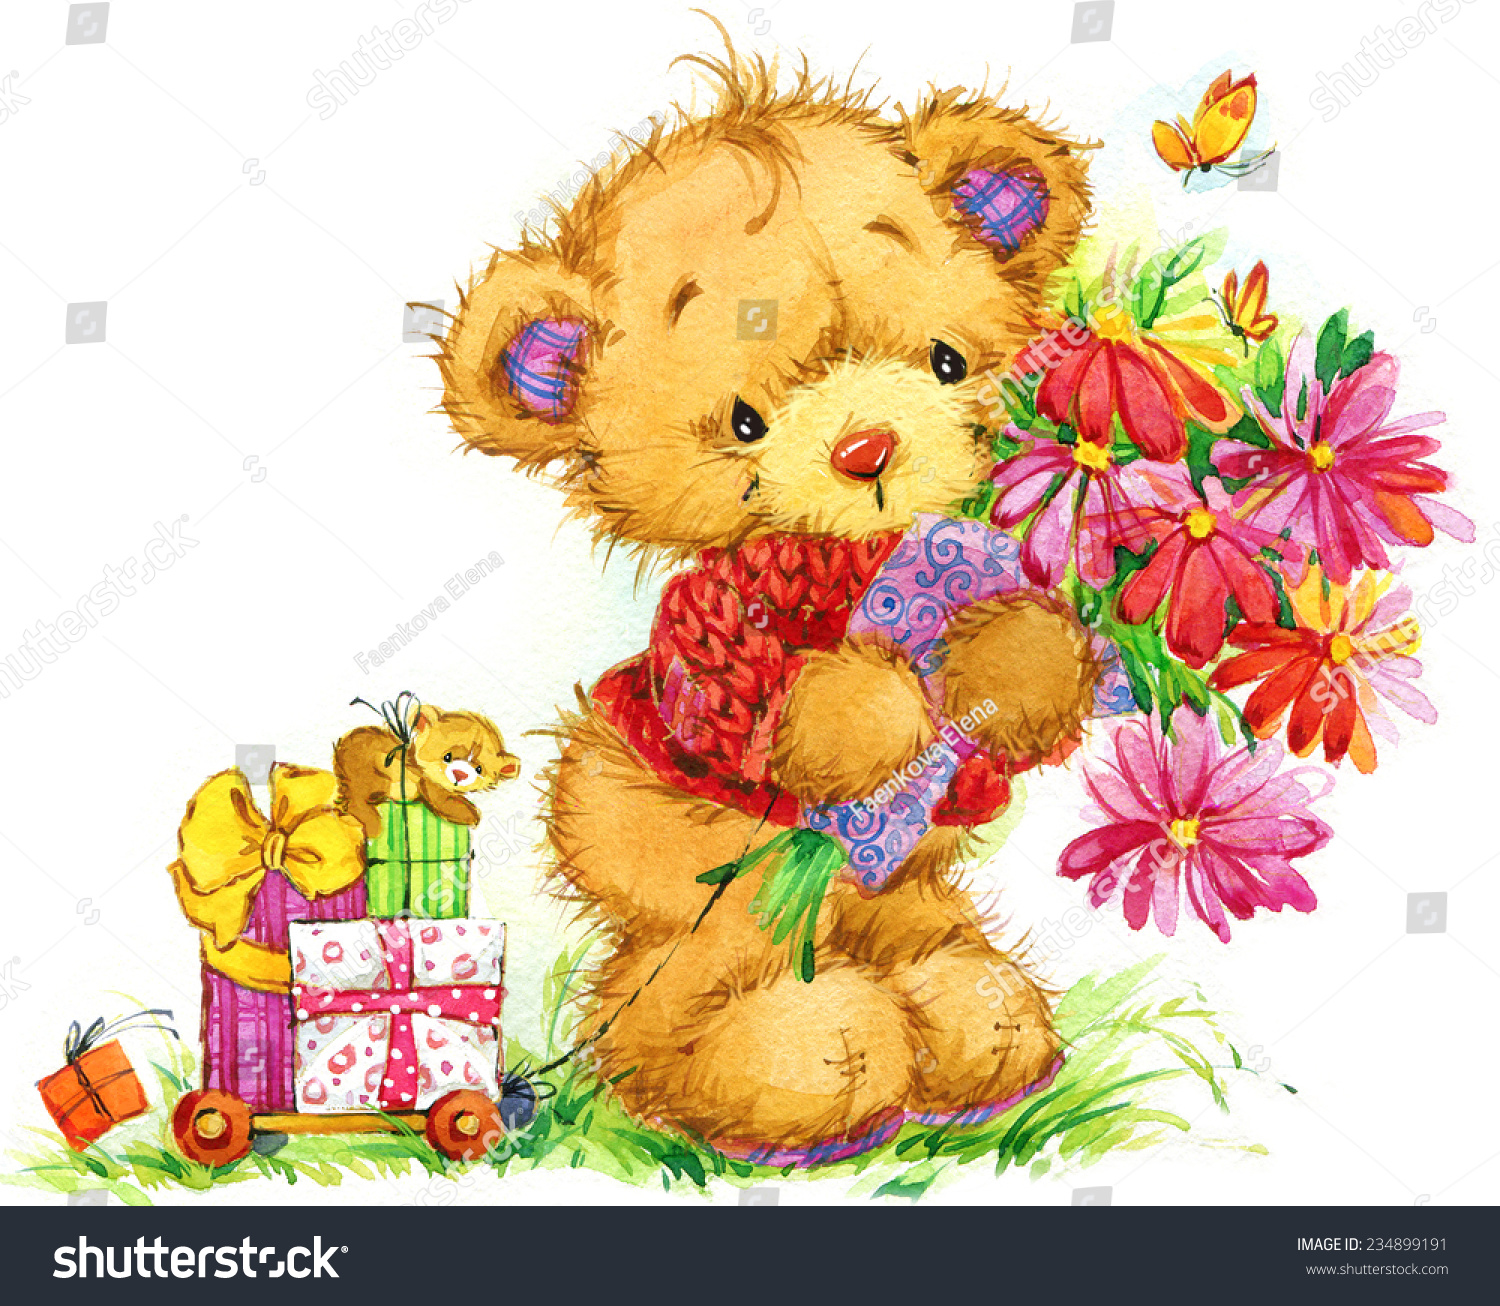 Teddy bear funny background for greetings cards watercolor id 234899191 m4hsunfo